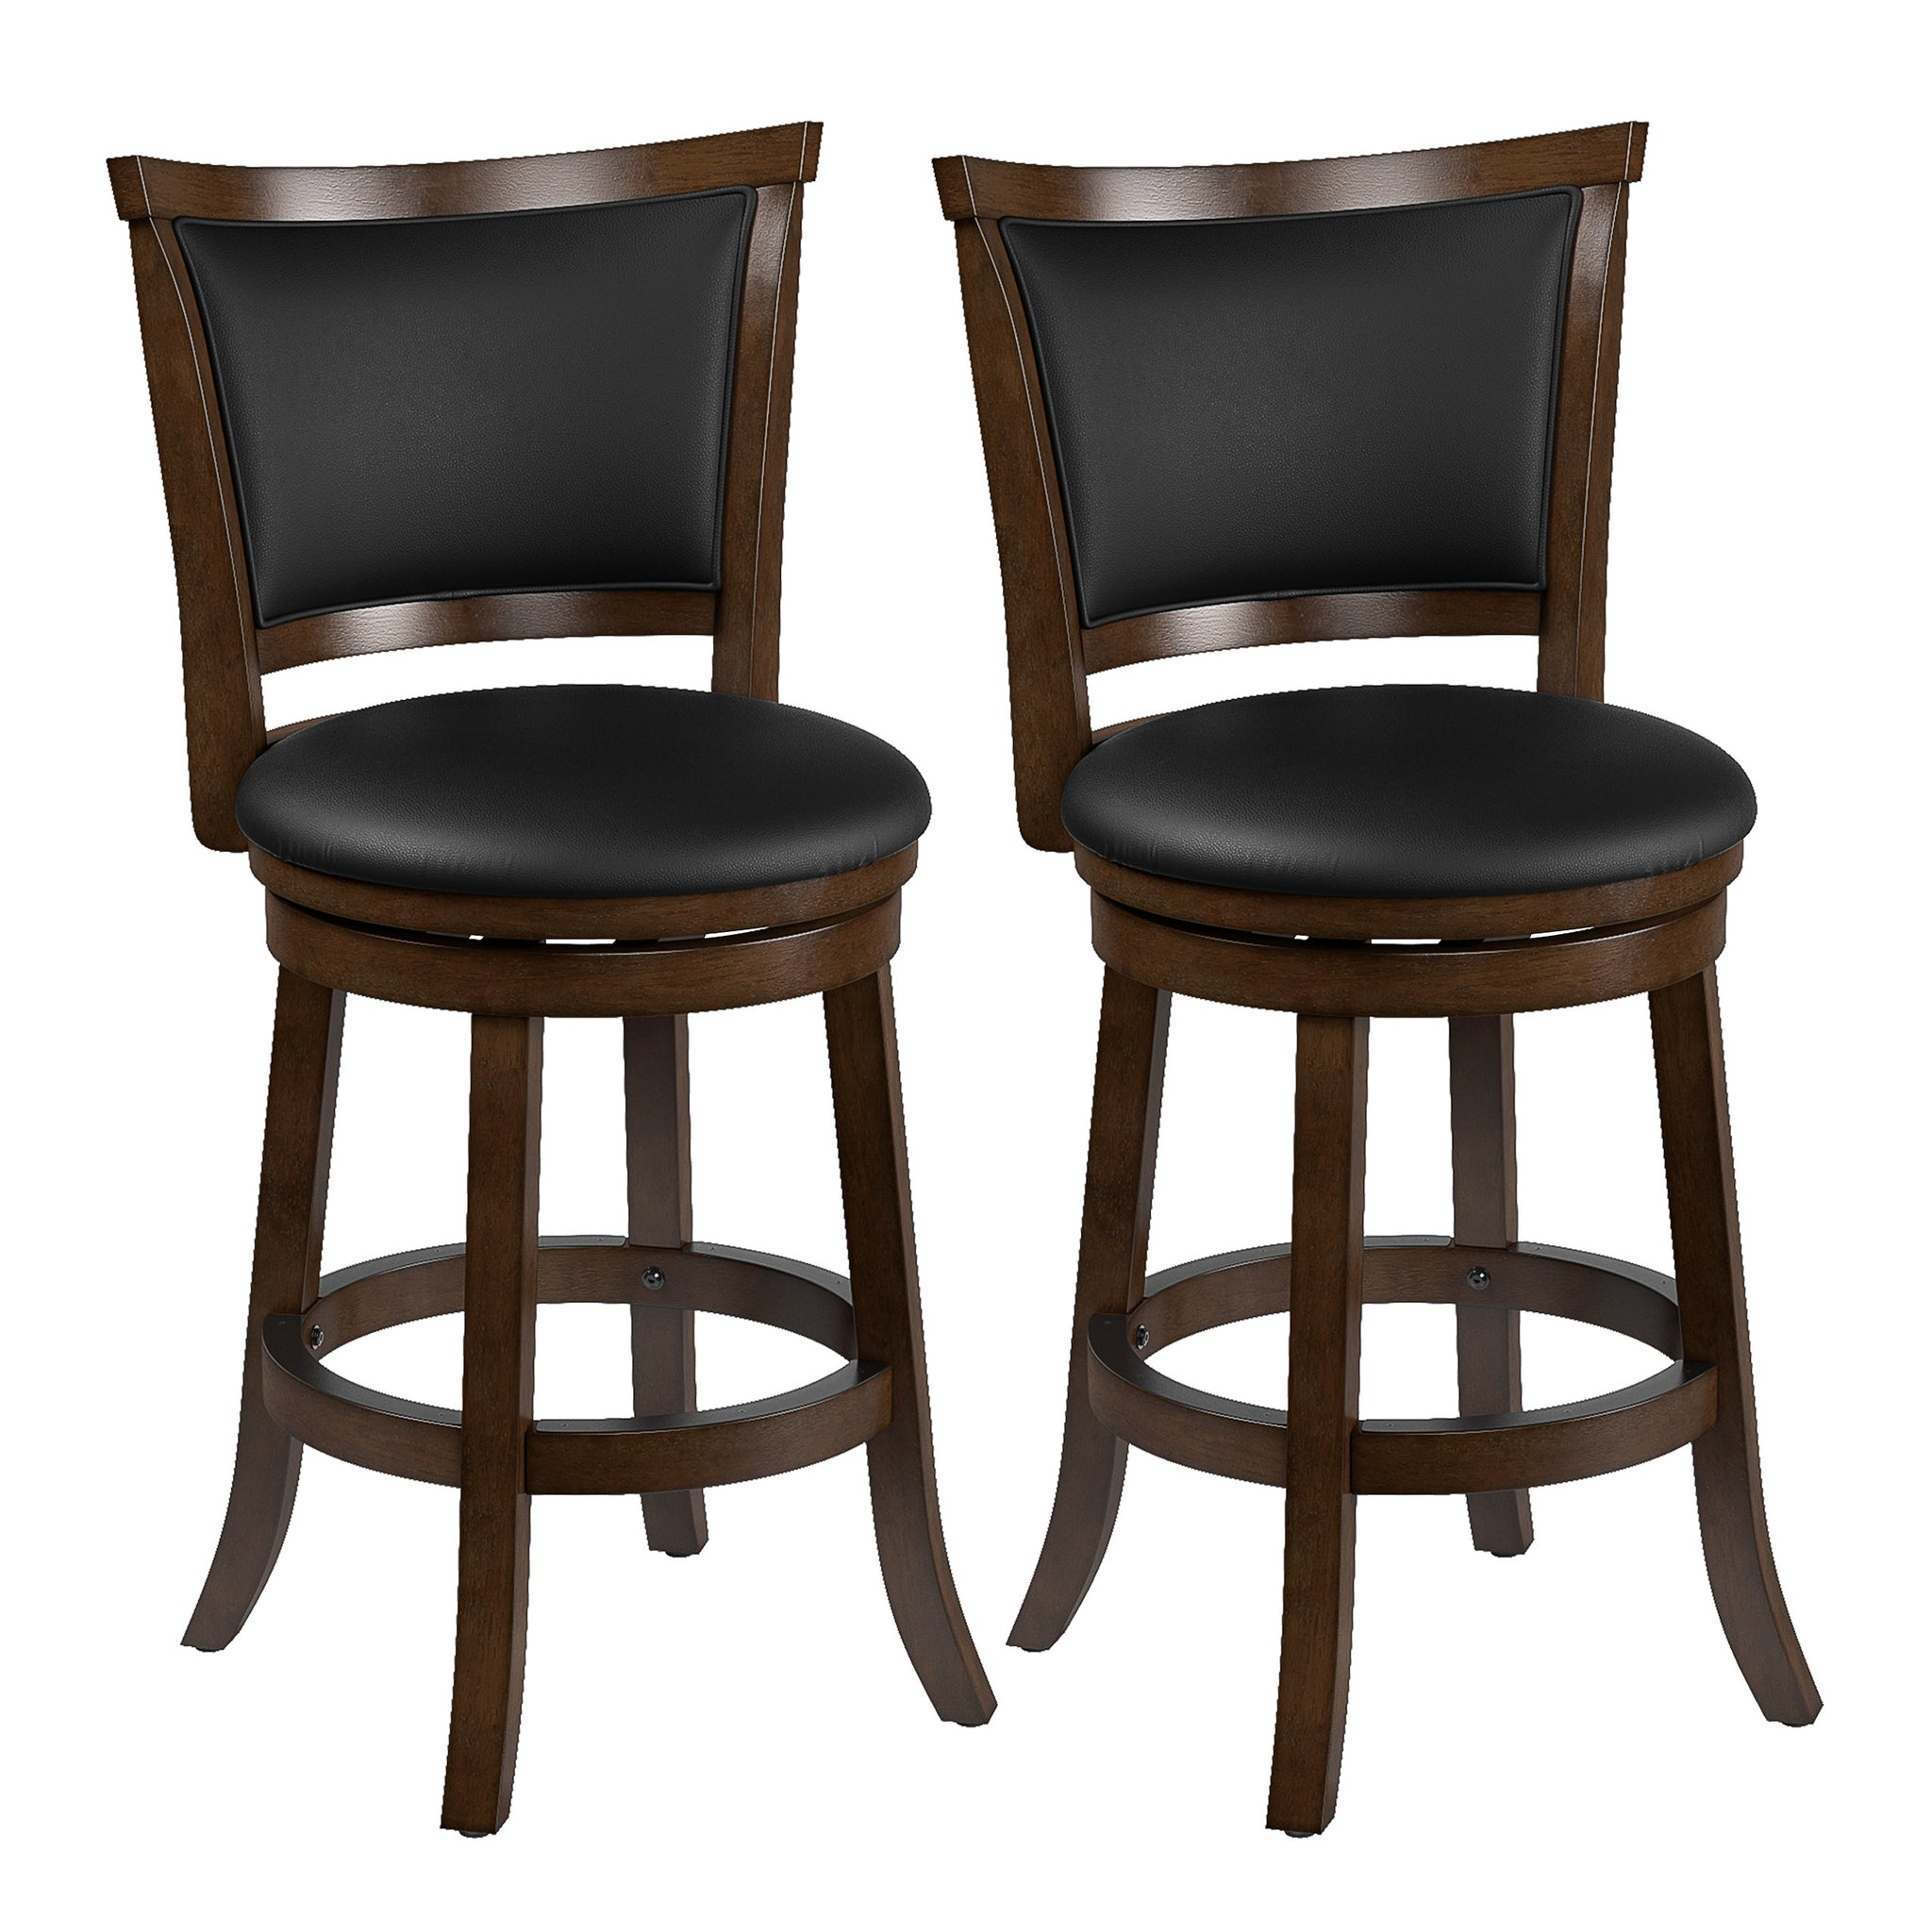 Picture of: Woodgrove Counter Height Wood Bar Stools With Pu Leather Seat And Back Corliving Furniture Us